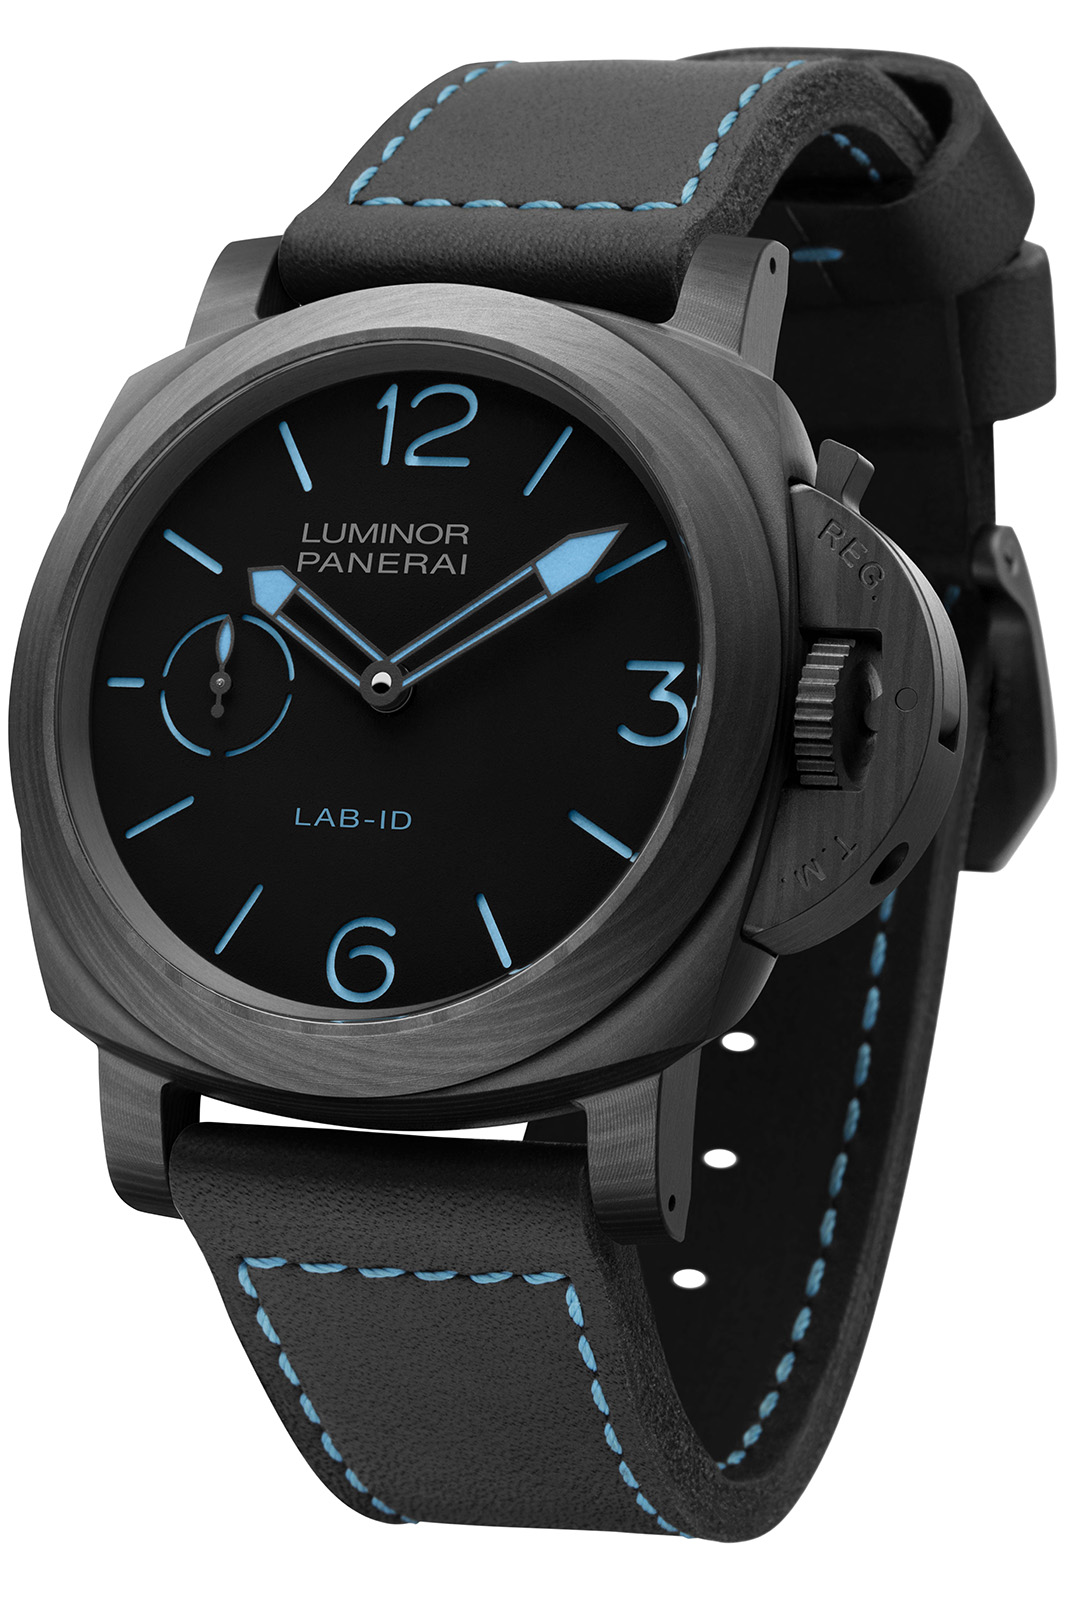 Panerai LAB-ID™ Luminor 1950 Carbotech™ 3 Days (PAM700)